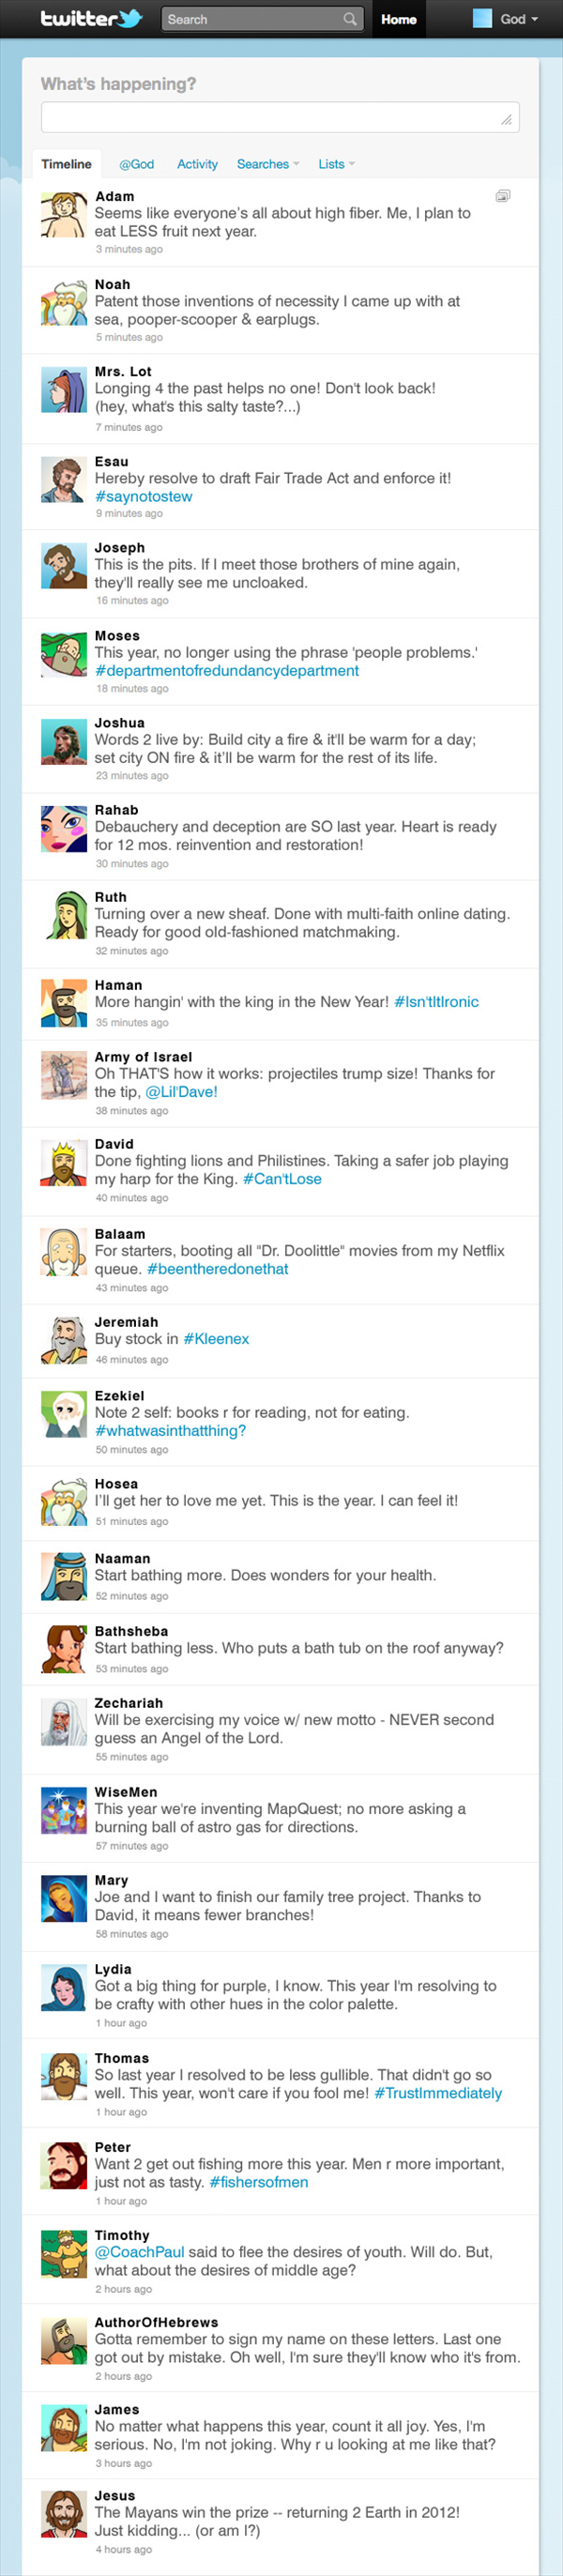 Bible Characters Tweet New Years Resolutions